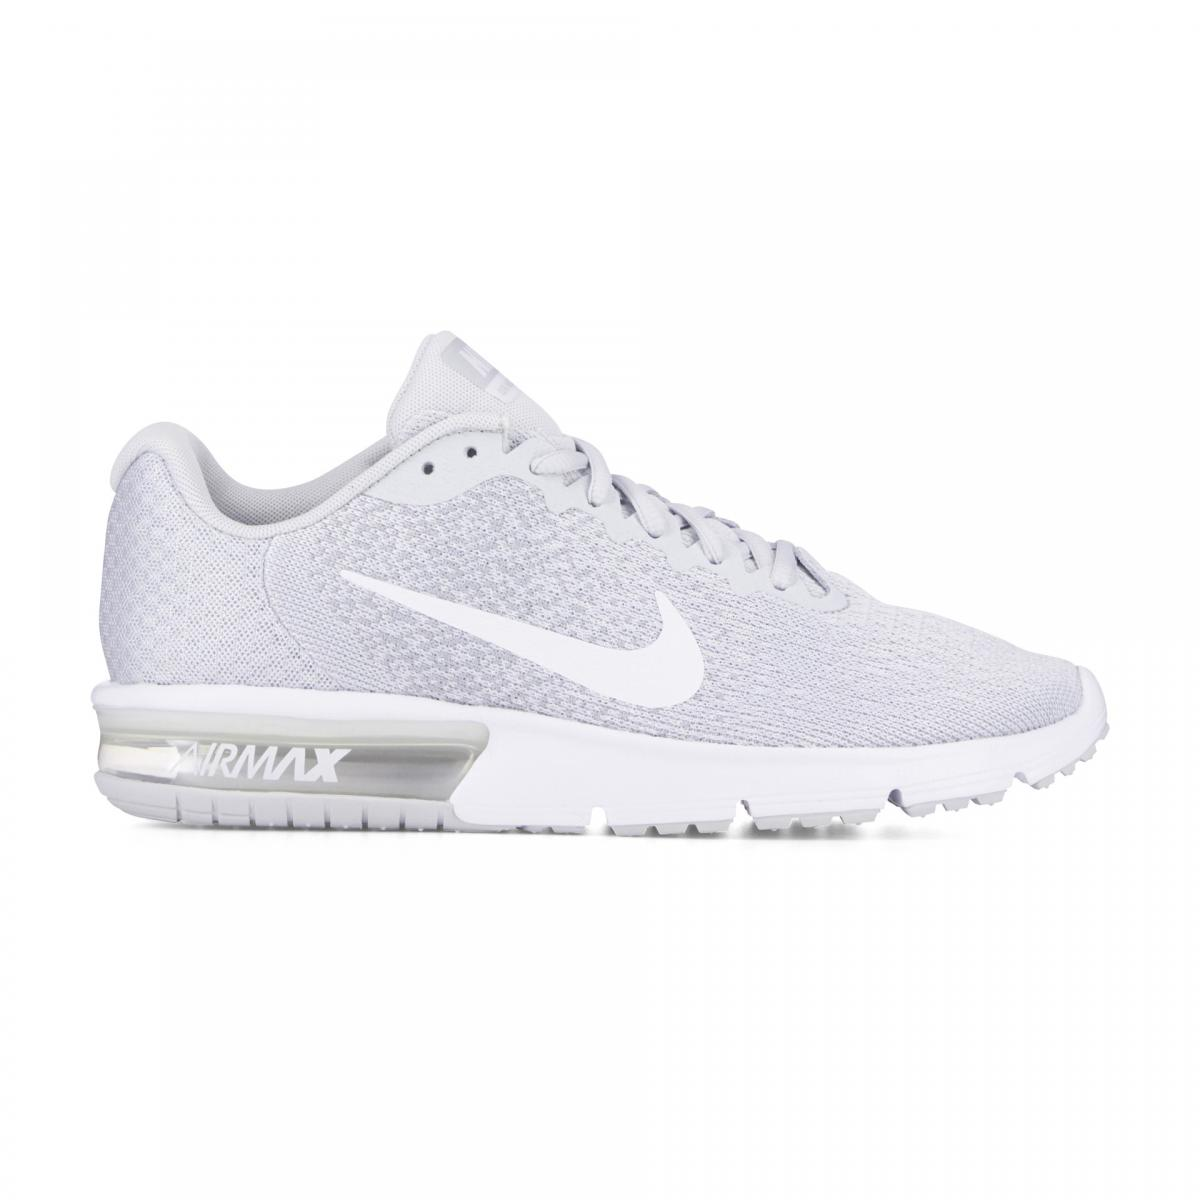 purchase cheap fa9f3 eb923 Homme Nike Air Max Sequent 2 Chaussures (Platine pure   Blanc   Wolf Gris) 852461  007 Boutique En Ligne Nike Air Max Sequent 2, Chaussures de Running ...